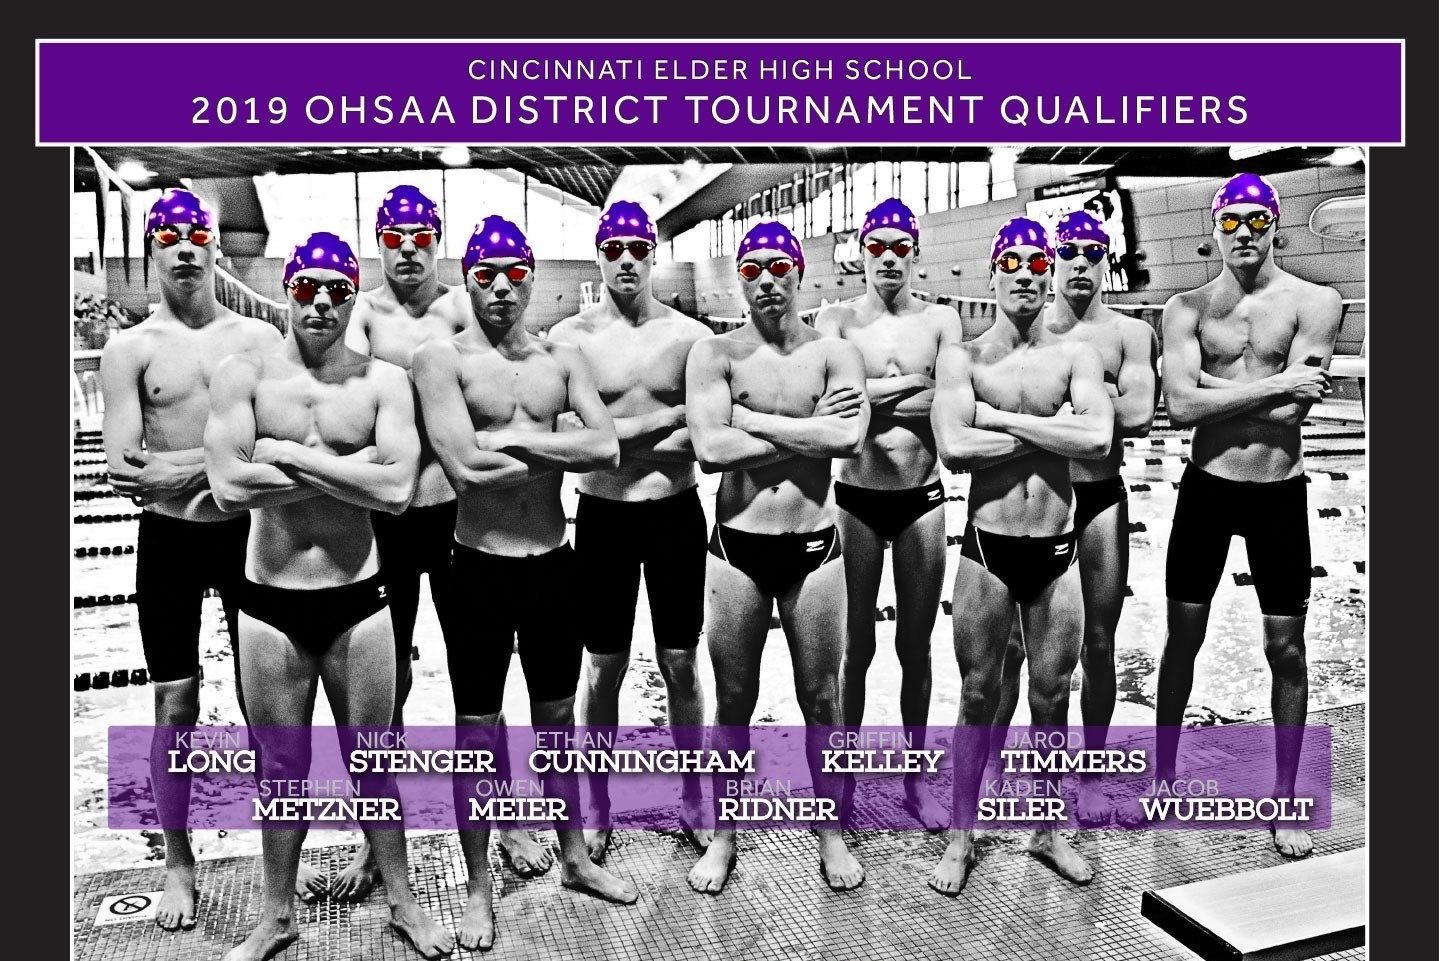 Poster featuring the 2018-19 district qualifiers from the Elder swim team.